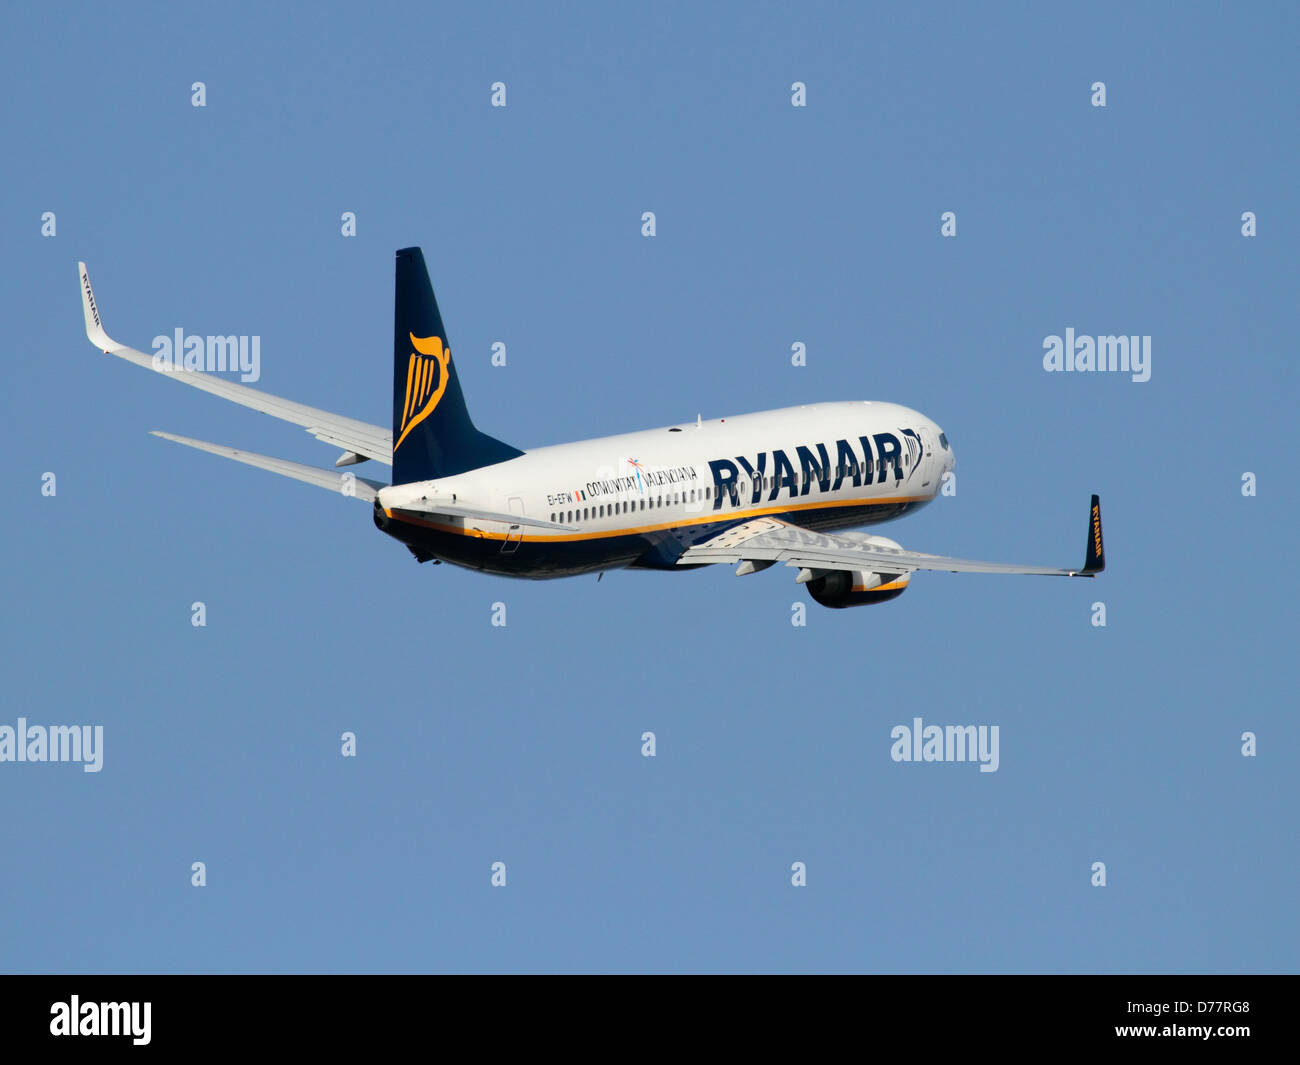 Economy air travel. Boeing 737-800 airliner belonging to low-cost airline Ryanair in a climbing turn on takeoff - Stock Image